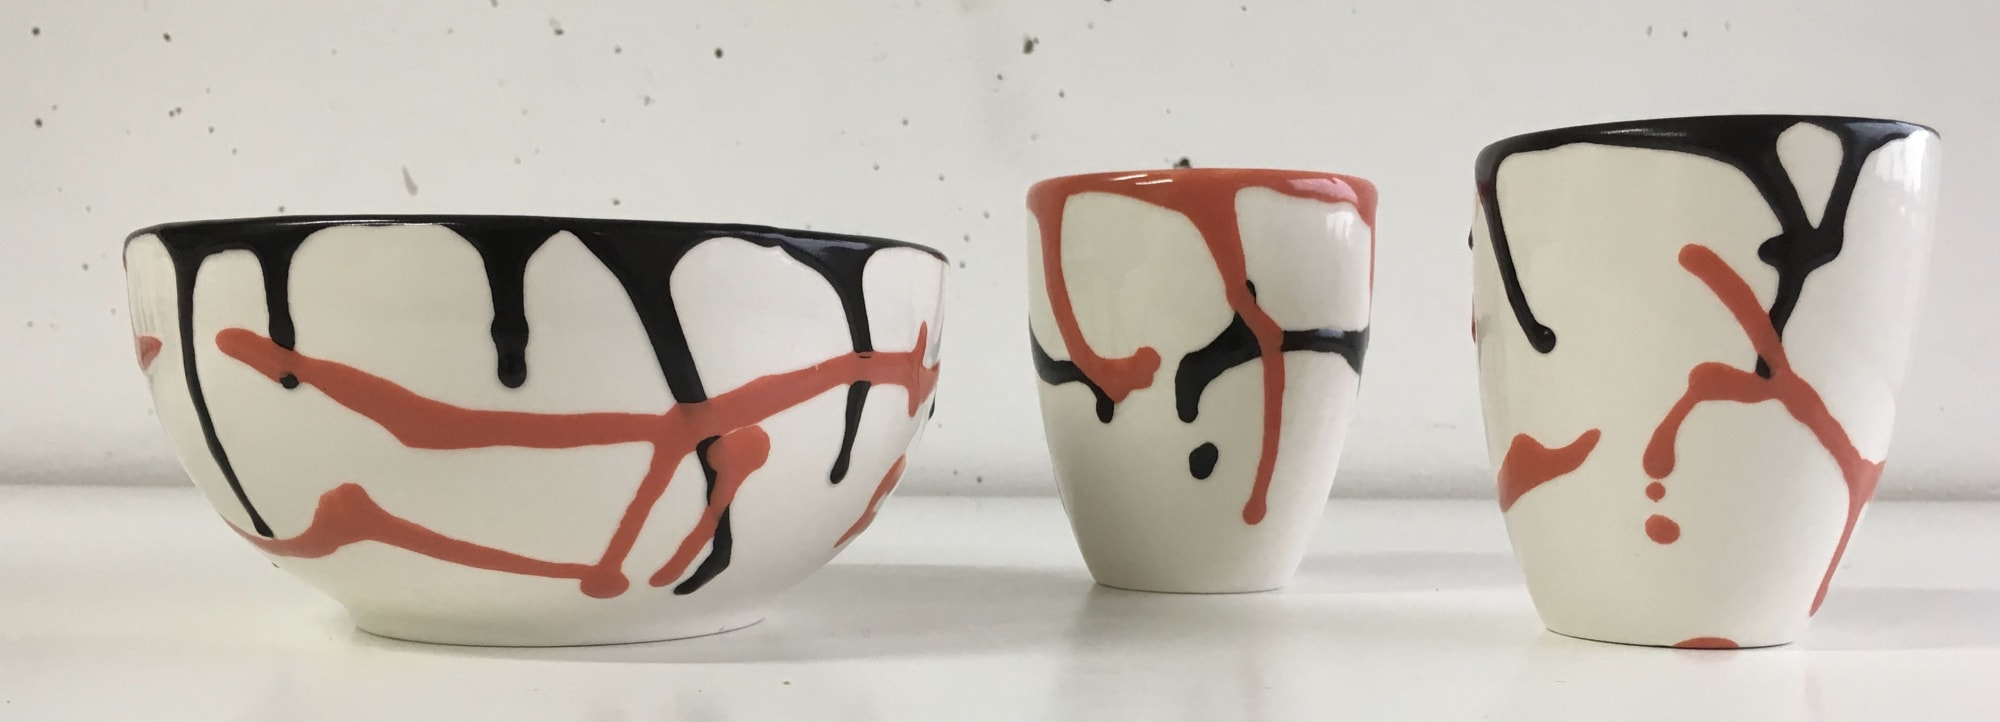 Vases & Vessels by Peter Vial seen at Amsterdam-Zuidoost, Amsterdam - Ceramics